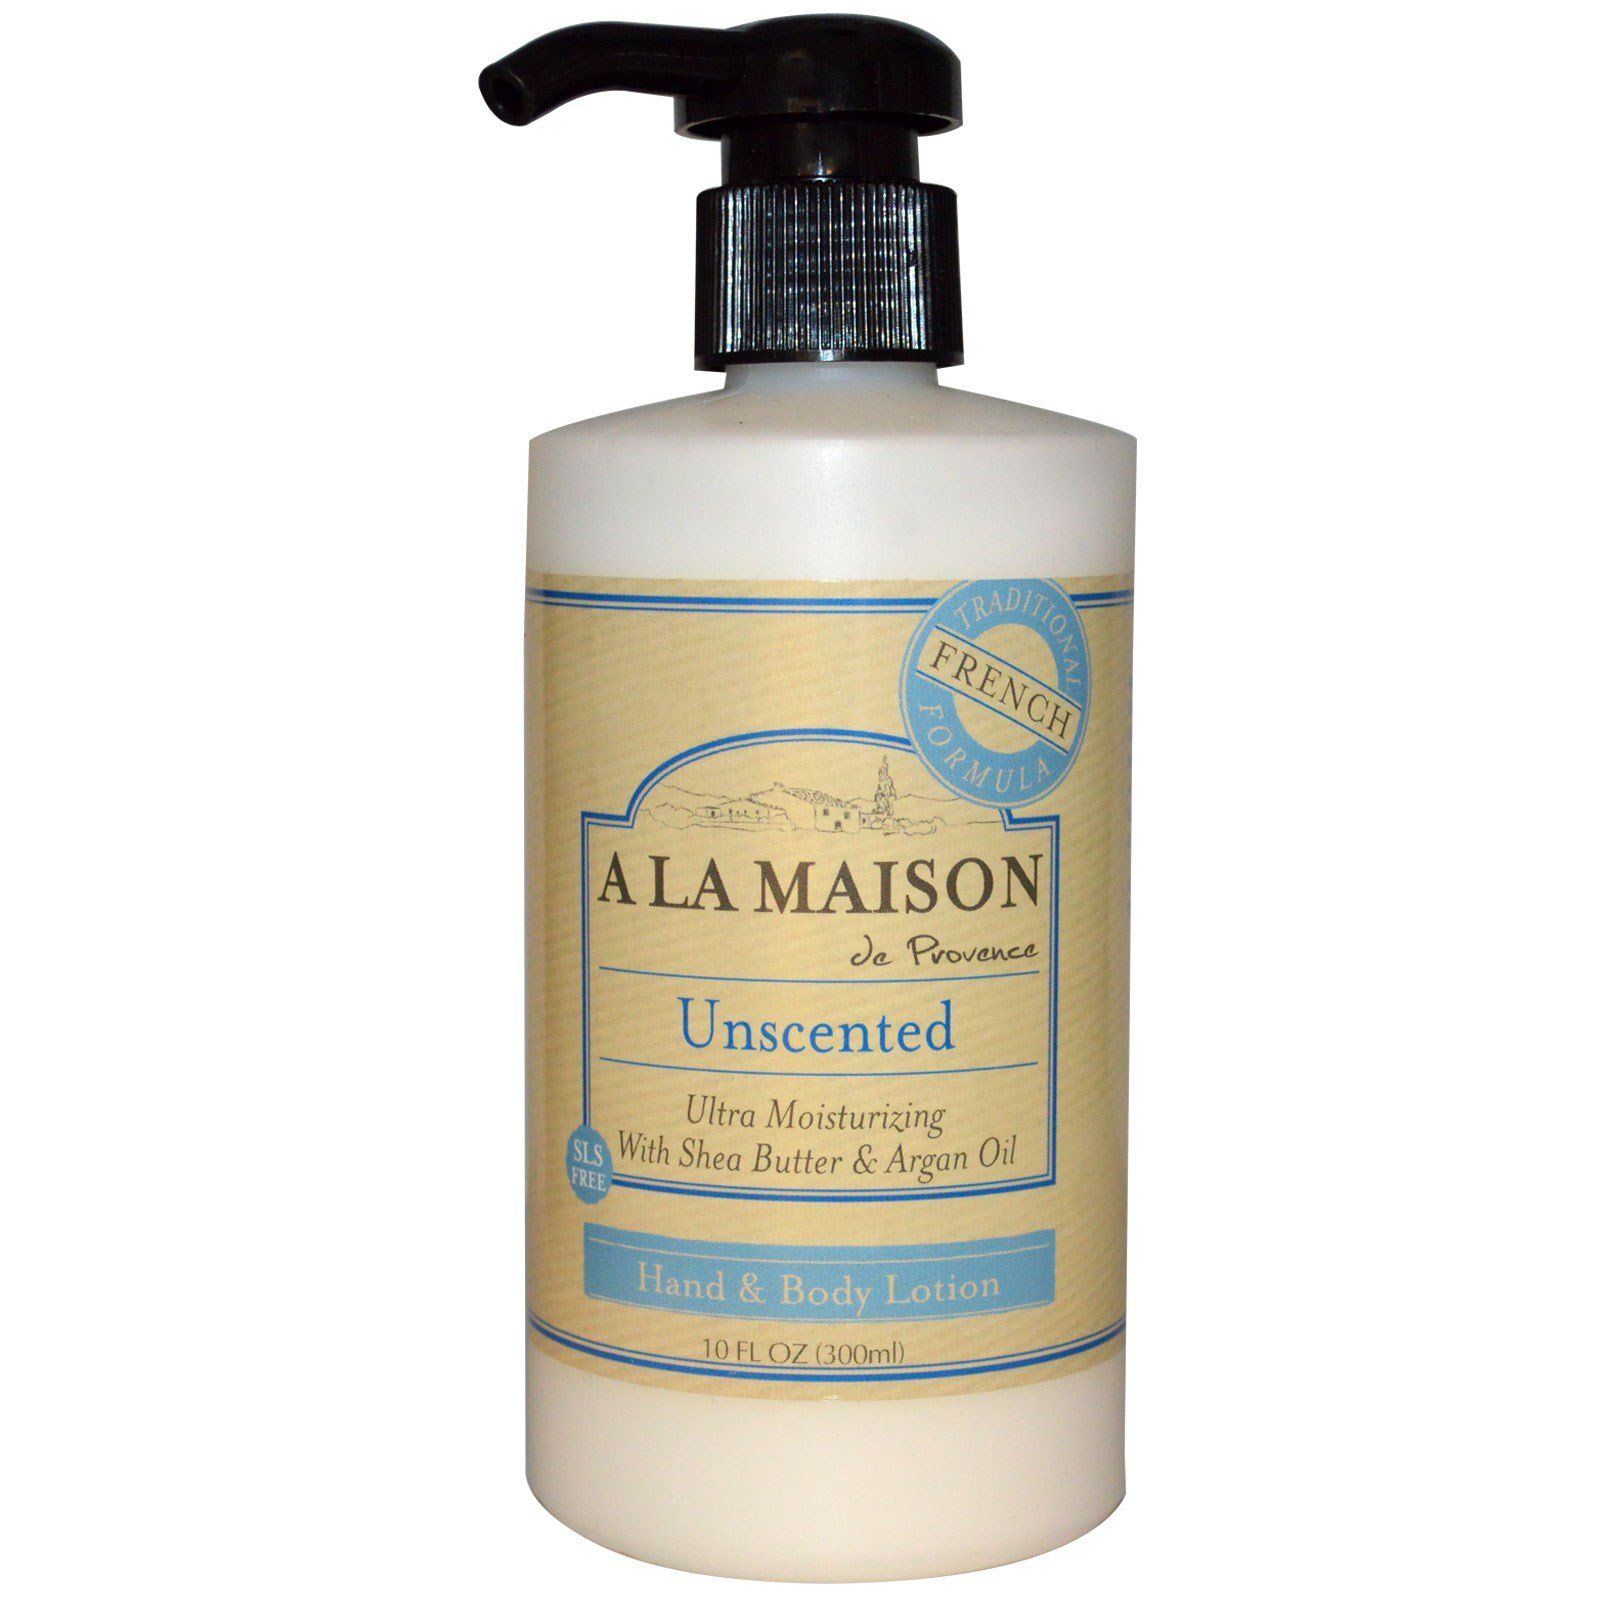 A la maison de provence hand body lotion unscented 10 for A la maison lotion